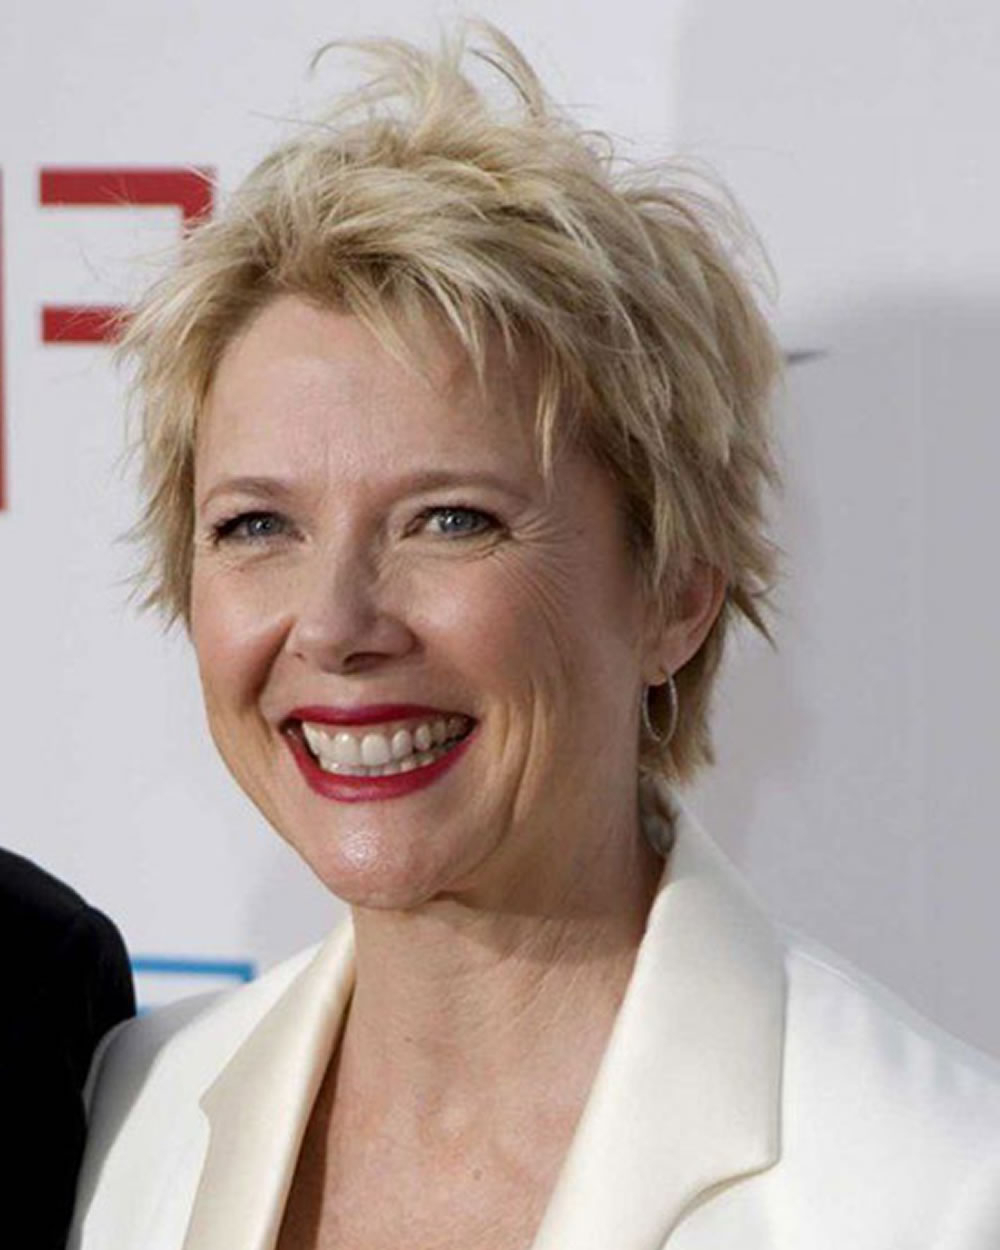 Pixie Short Haircuts For Older Women Over 50 & 2018 2019 Short Pertaining To Older Lady Short Hairstyles (View 18 of 25)